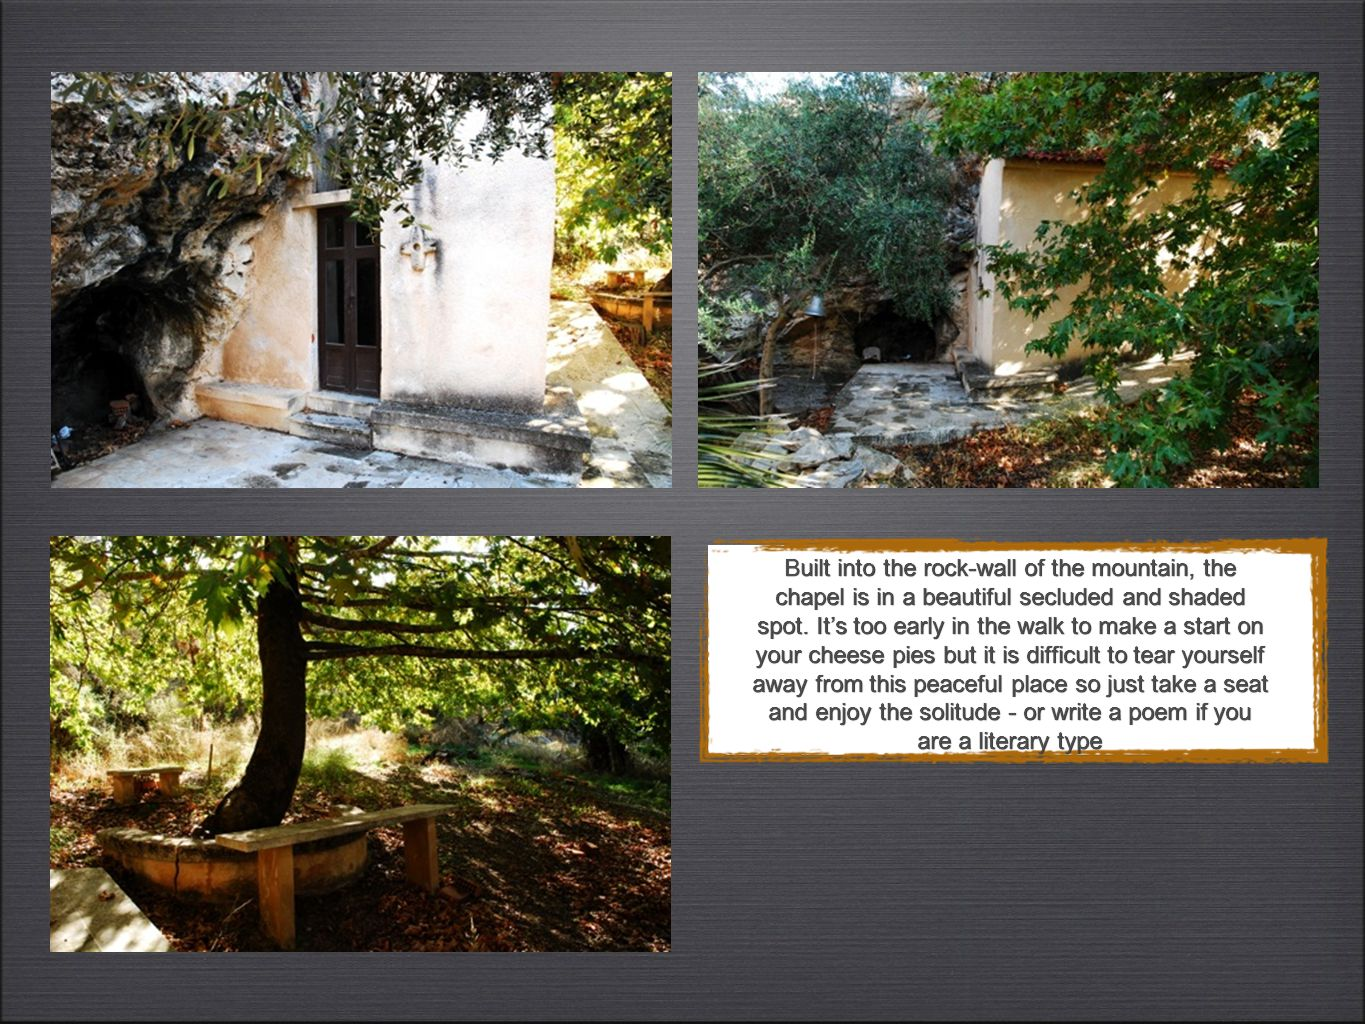 Built into the rock-wall of the mountain, the chapel is in a beautiful secluded and shaded spot.